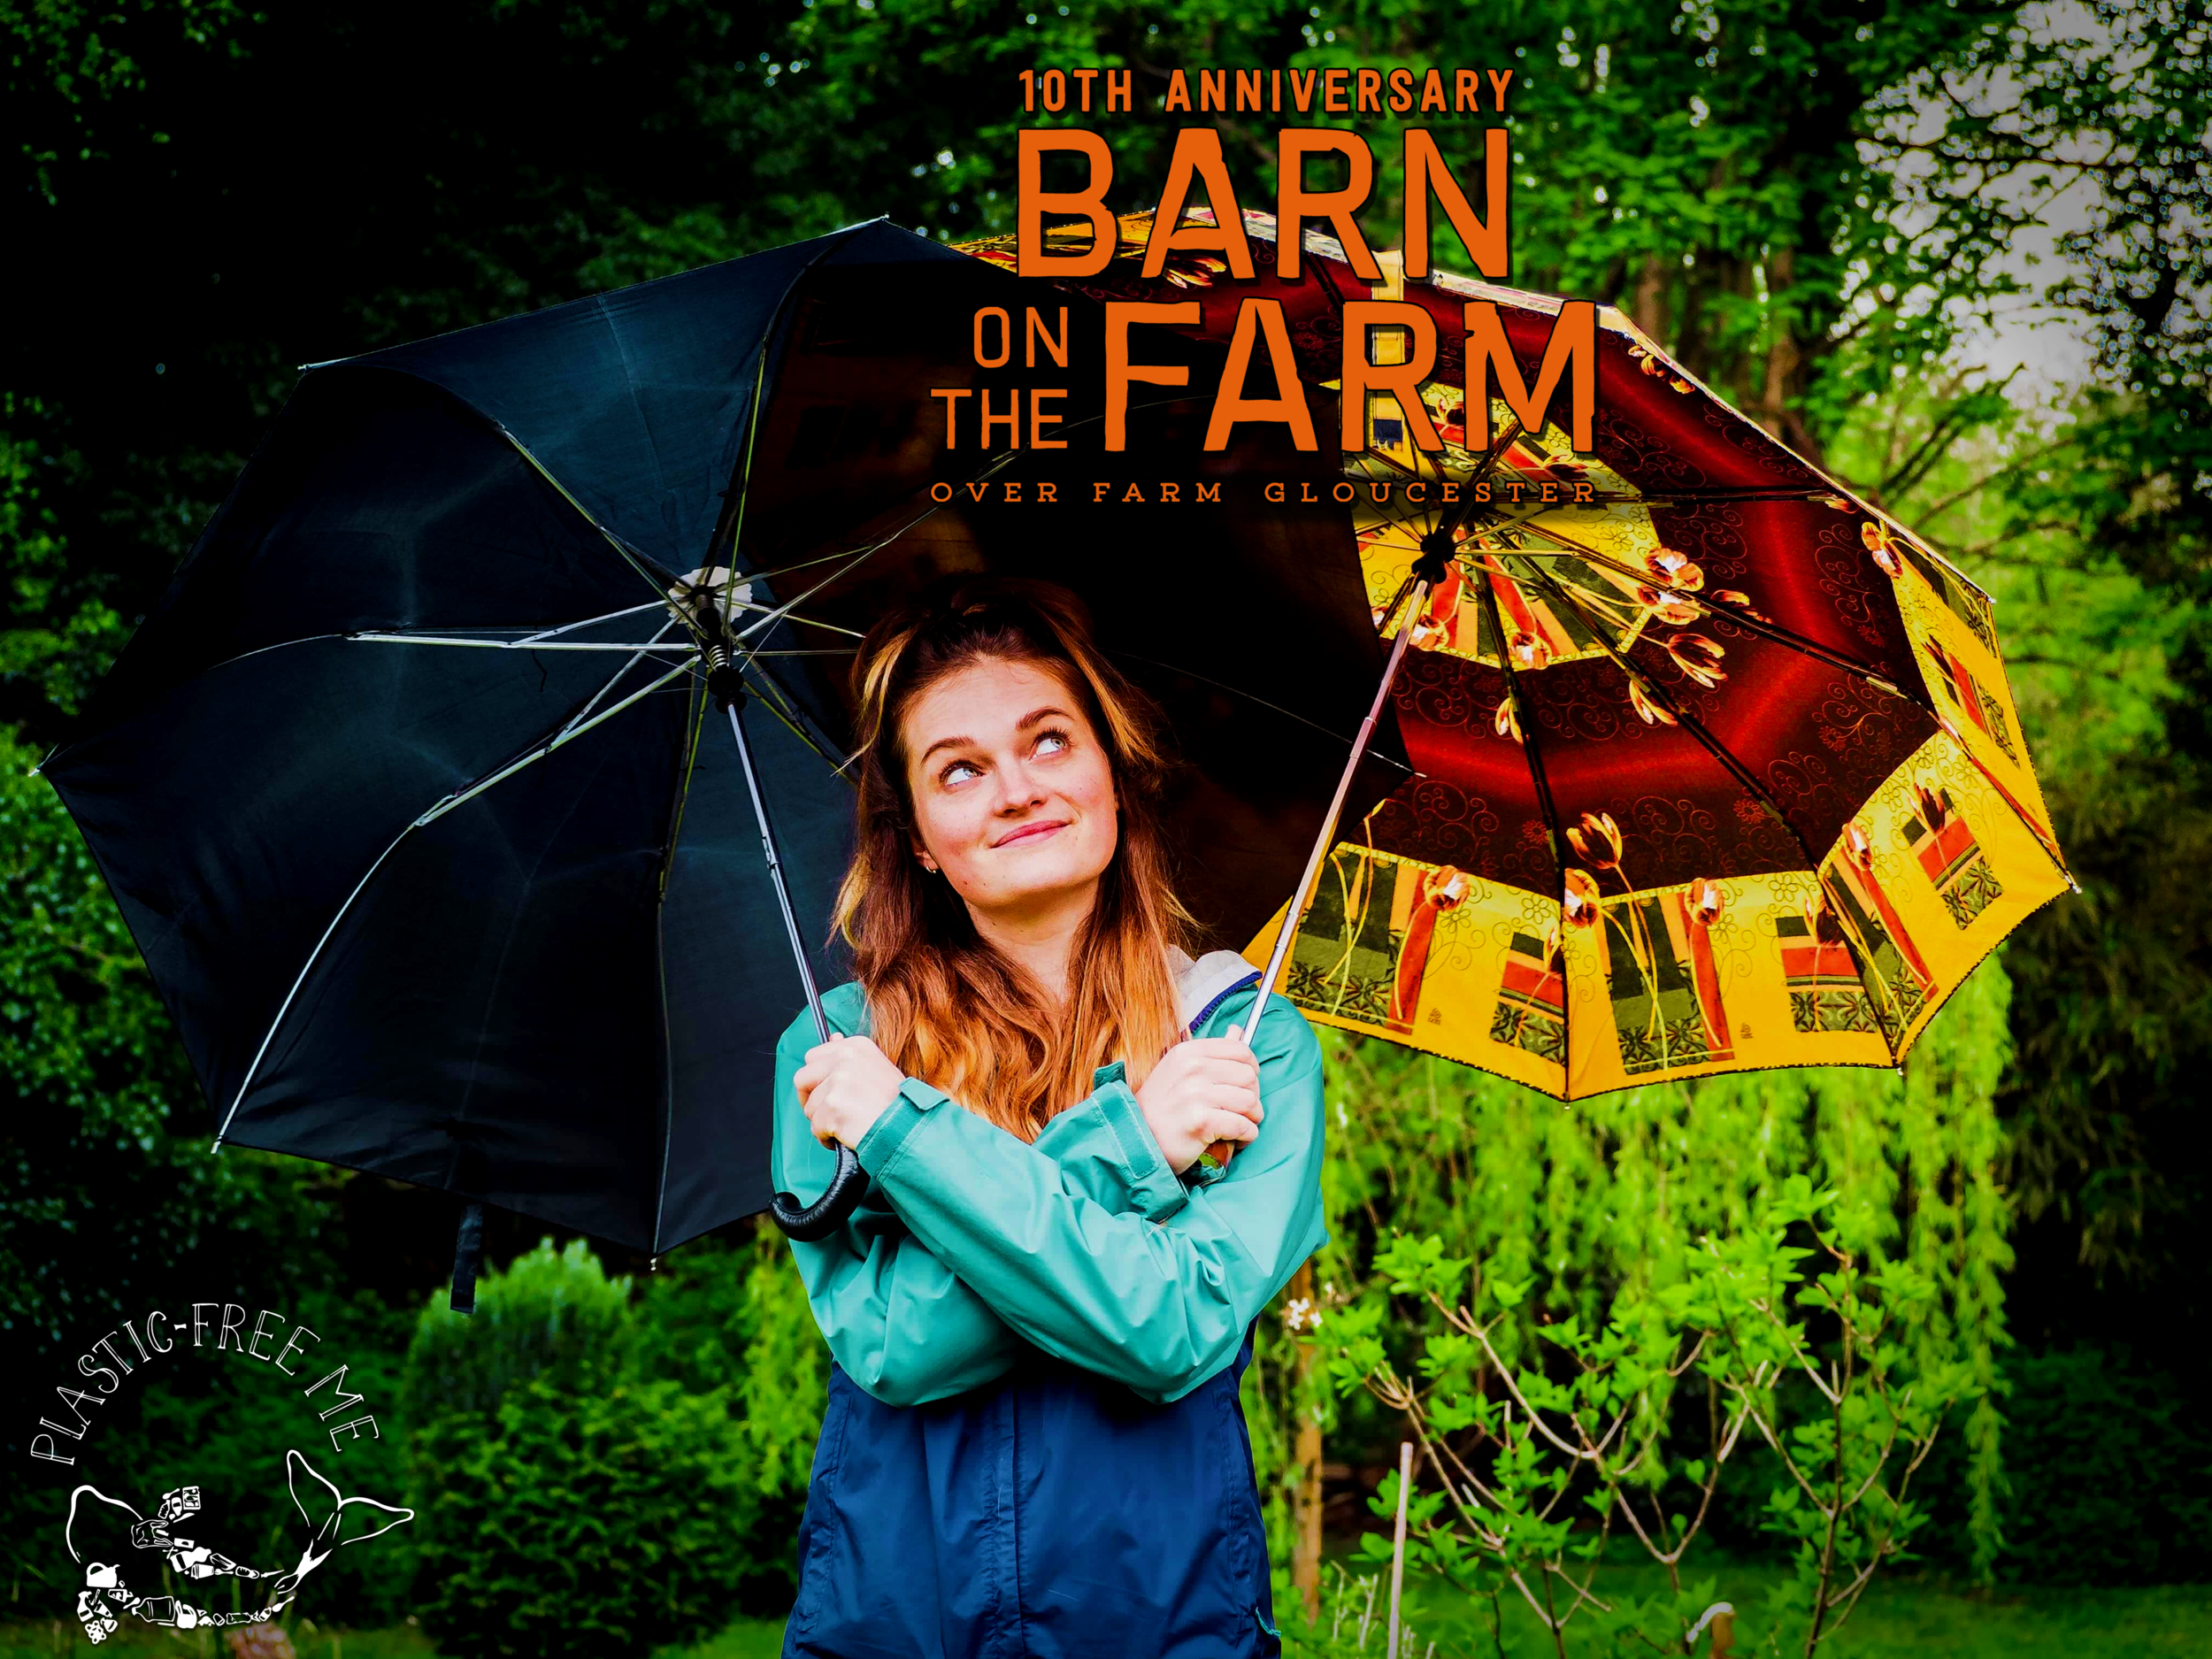 Upcycle your Umbrella for Barn on the Farm 2019